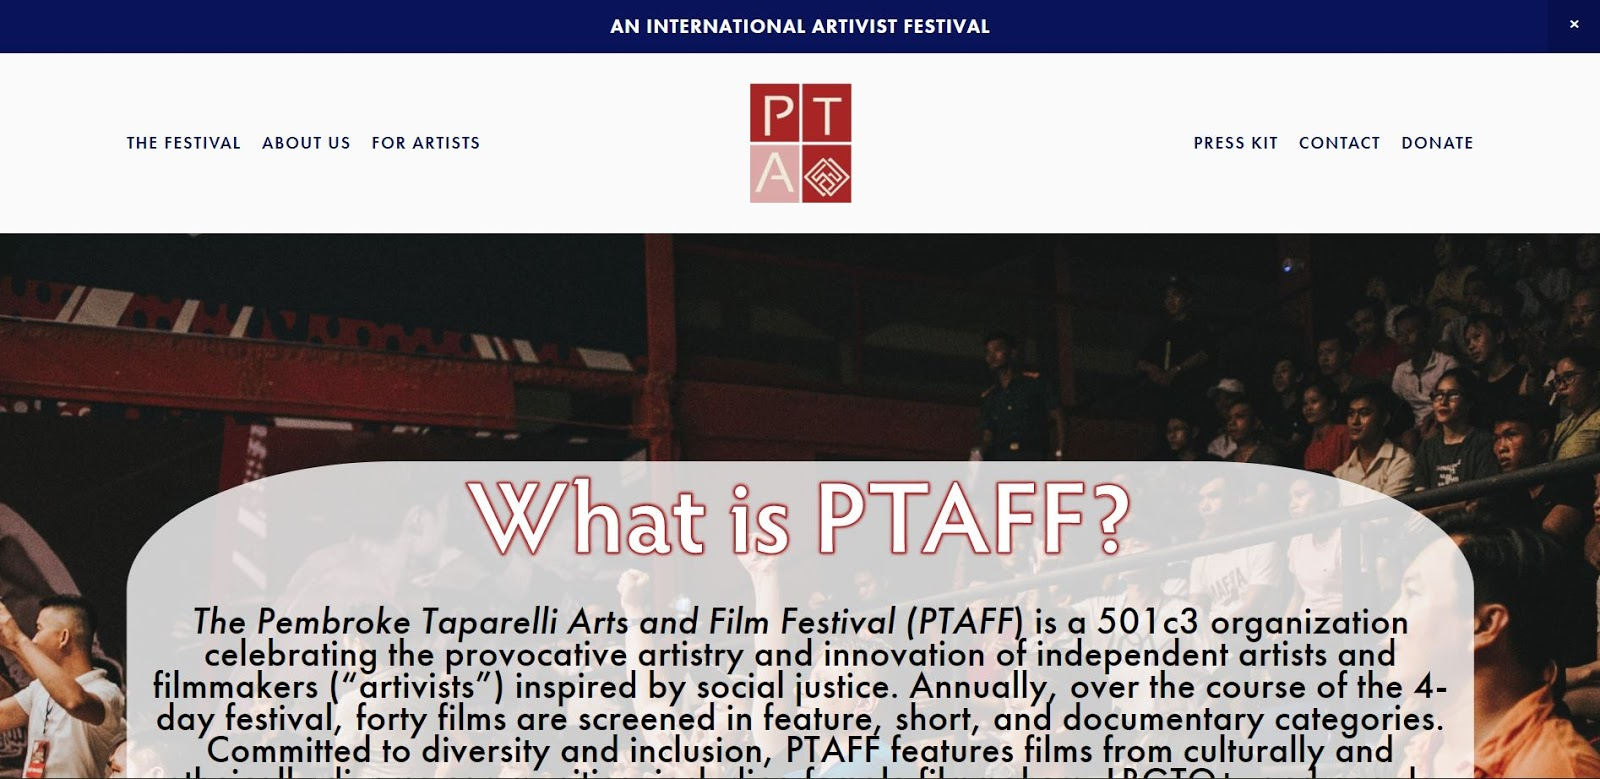 The-Pembroke-Taparelli-Arts-and-Film-Festival